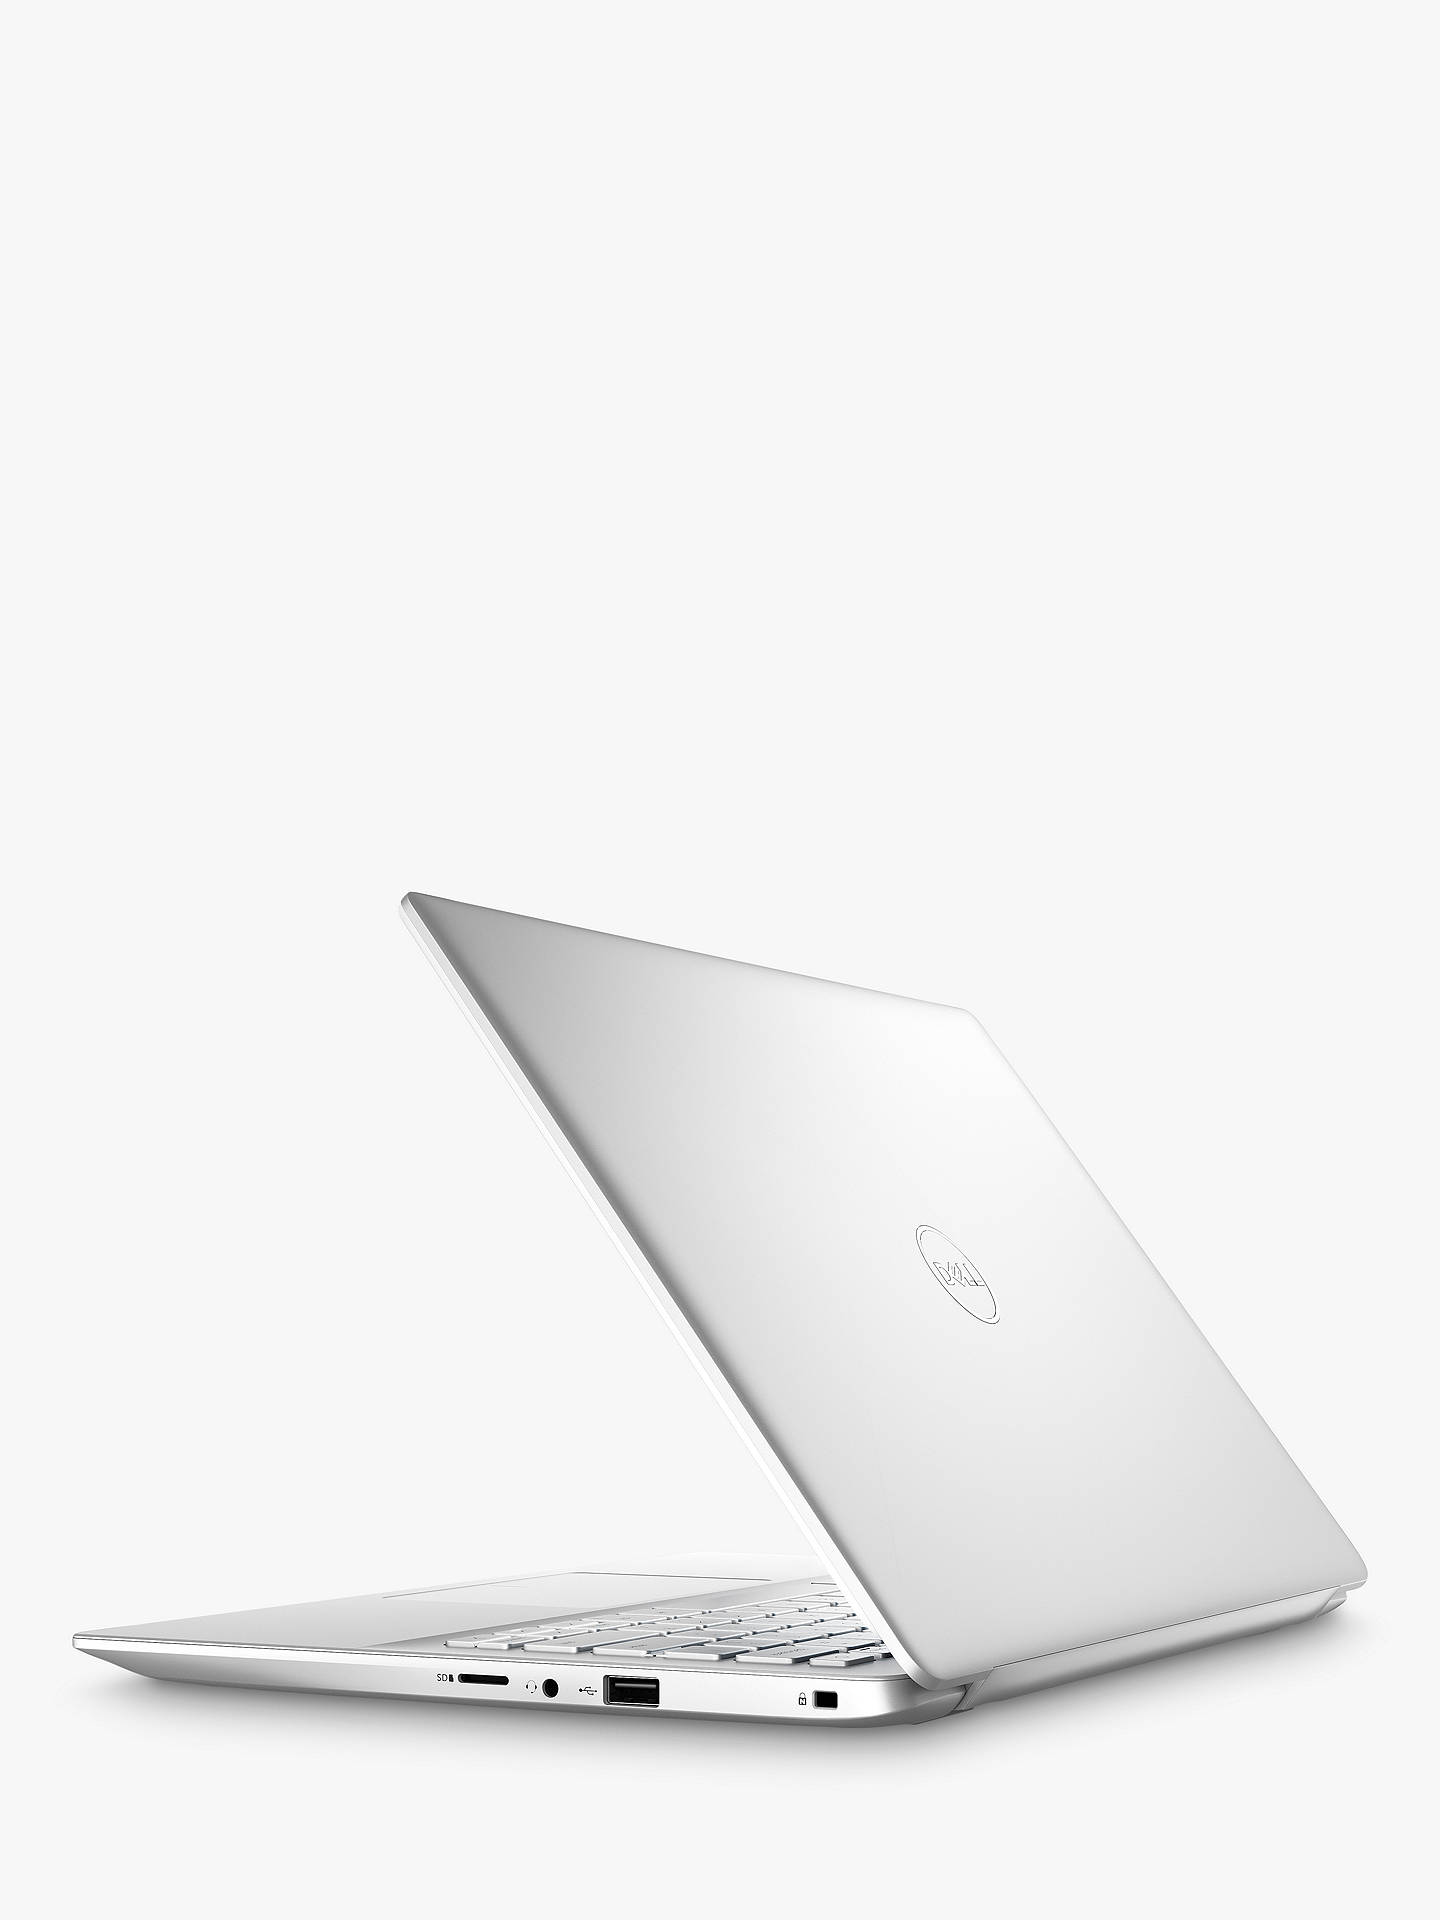 "Buy Dell Inspiron 14 5490 Laptop, Intel i7 Processor, 8GB RAM, 512GB SSD, 14"" Full HD, Silver Online at johnlewis.com"